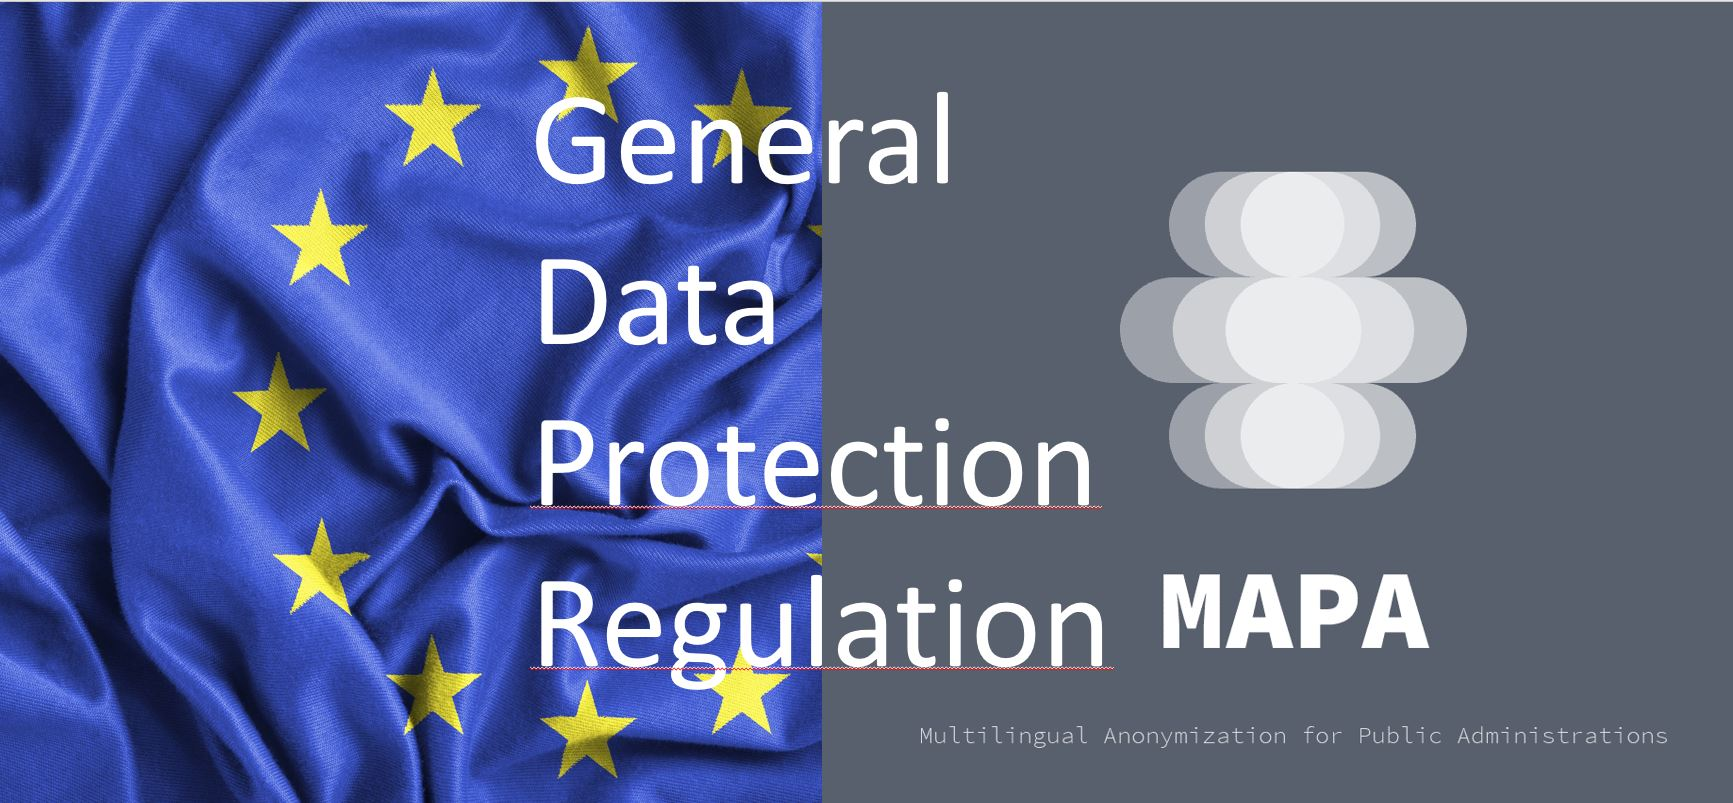 Blue and yellow starred flag of europe with MAPA project logo and General Data Protection Regulation